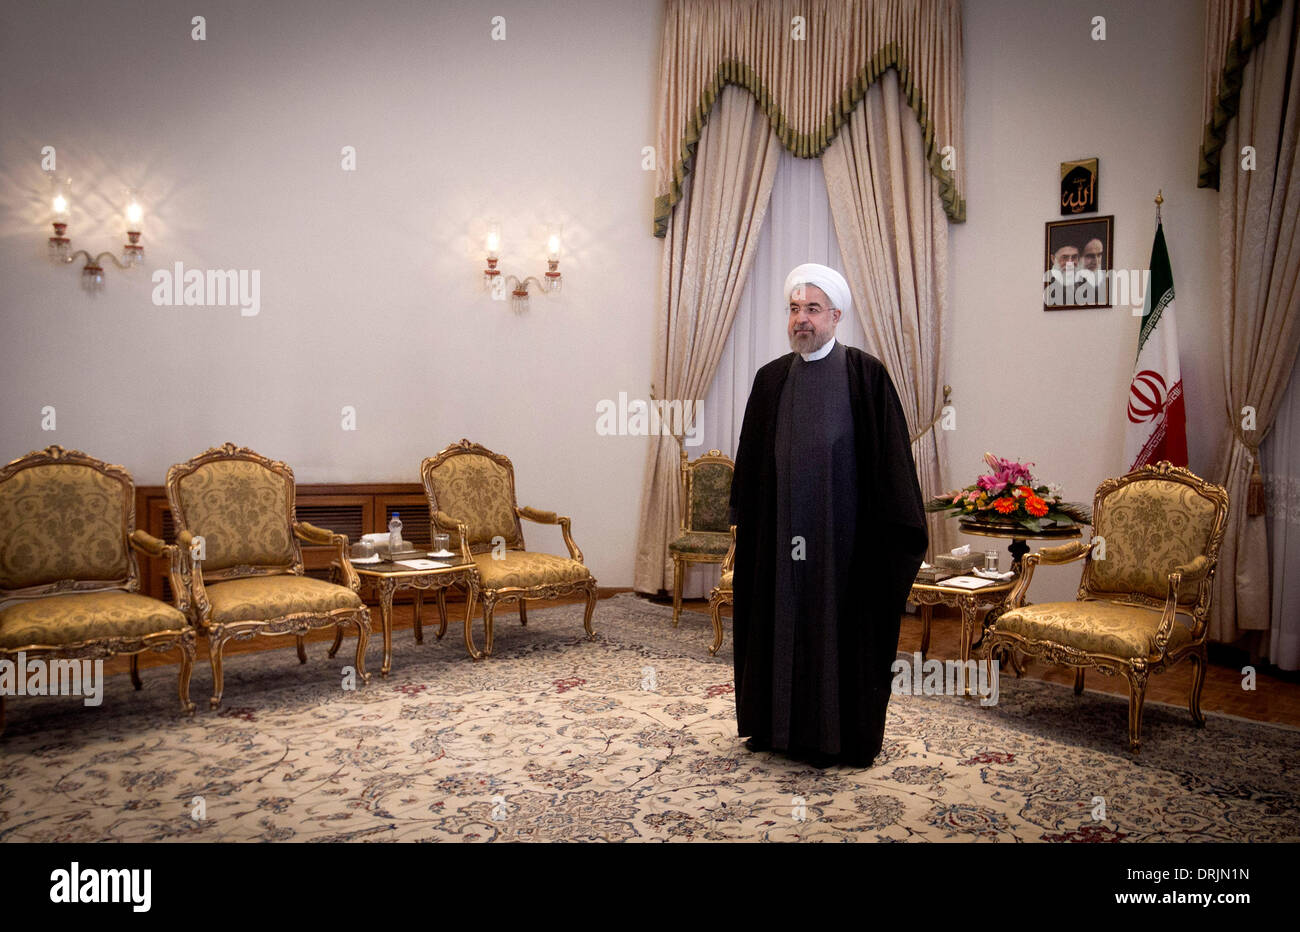 Tehran, Iran. 27th Jan, 2014. Iranian President Hassan Rouhani waits before his meeting with South Korean National Assembly Speaker Kang Chang-hee at presidential palace in Tehran, capital of Iran, on Jan. 27, 2014. Rouhani called for closer economic ties with South Korea here on Monday, semi-official Fars news agency reported. Credit:  Ahmad Halabisaz/Xinhua/Alamy Live News - Stock Image